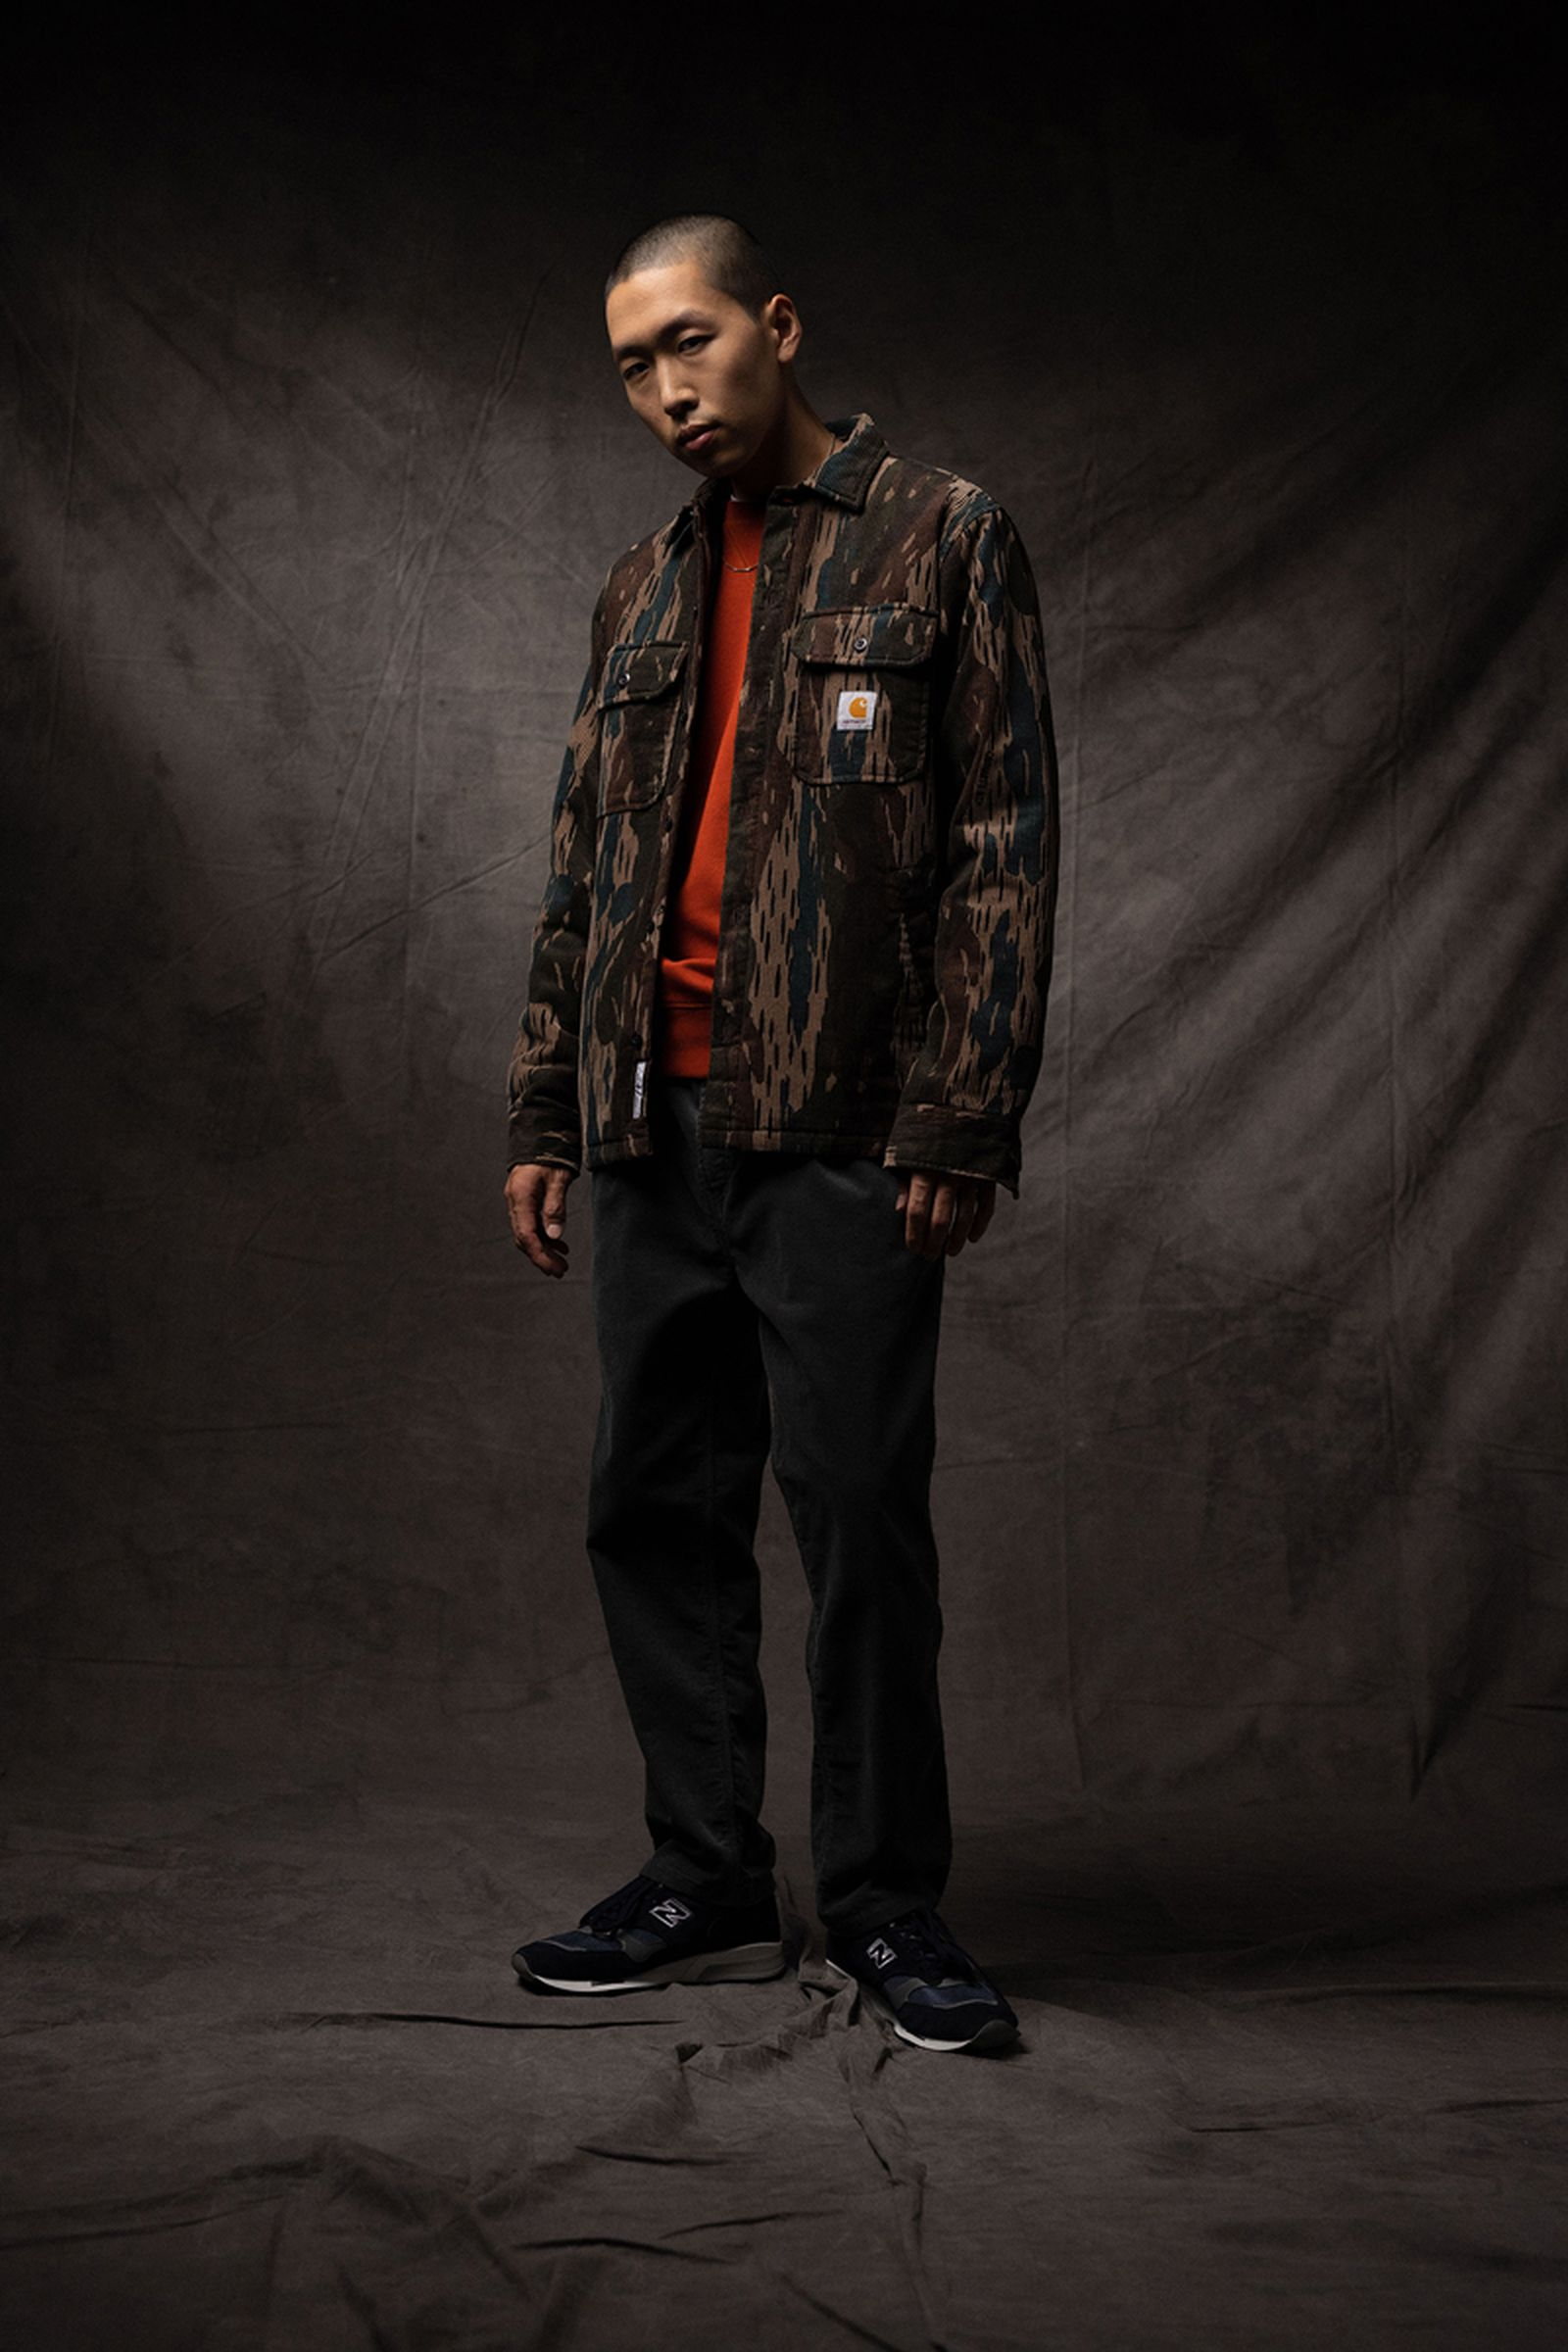 carhartt-wip-fall-winter-2021-collection- (11)